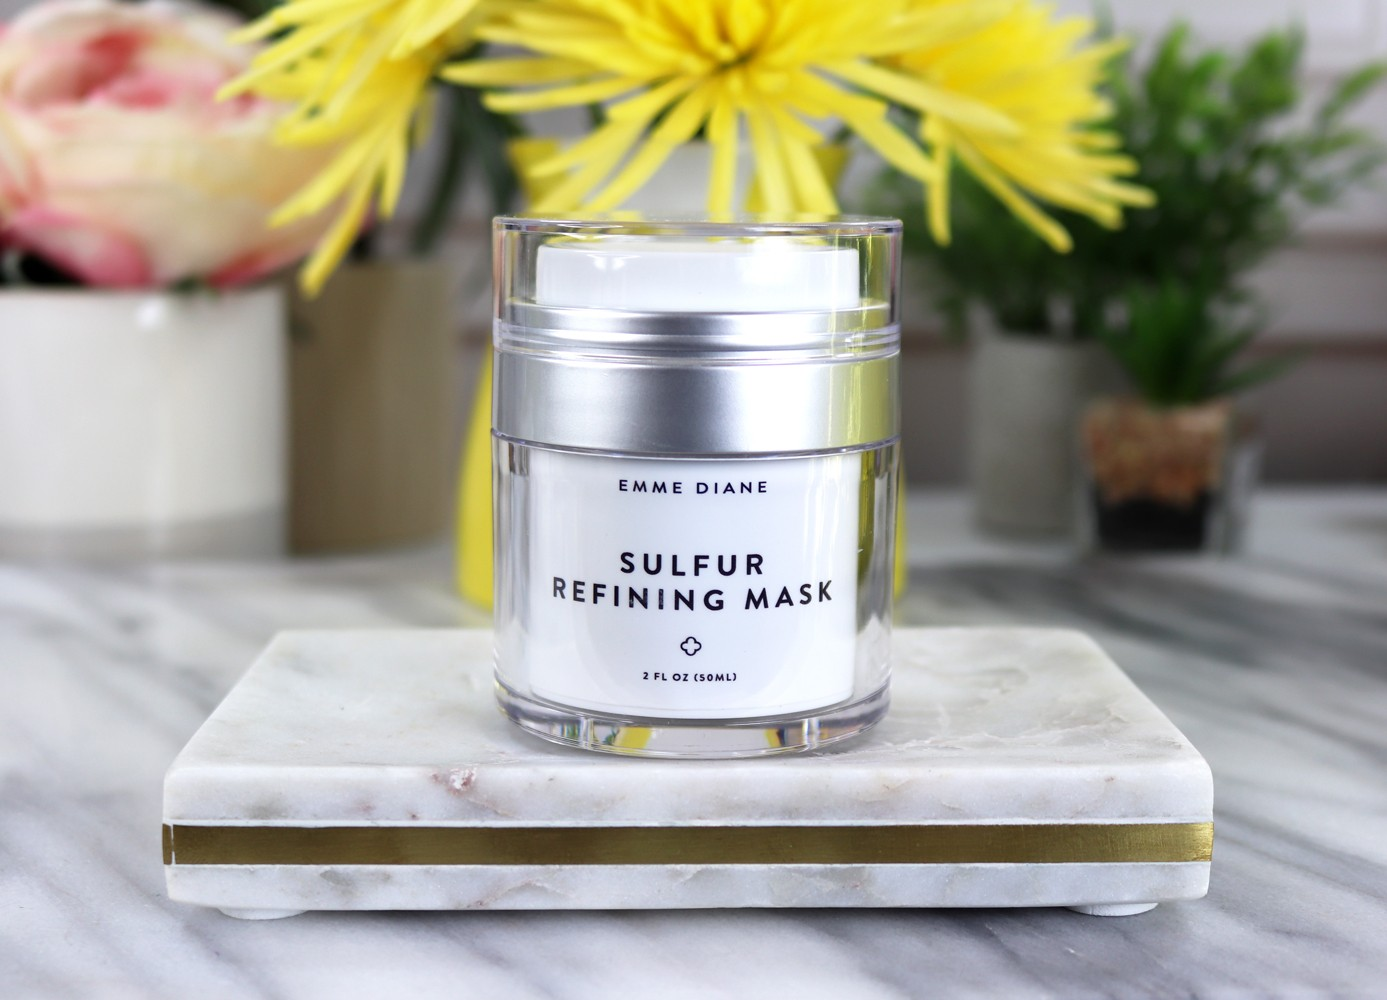 Emme Diane Sulfur Refining Mask by popular Los Angeles cruelty free beauty blogger My Beauty Bunny